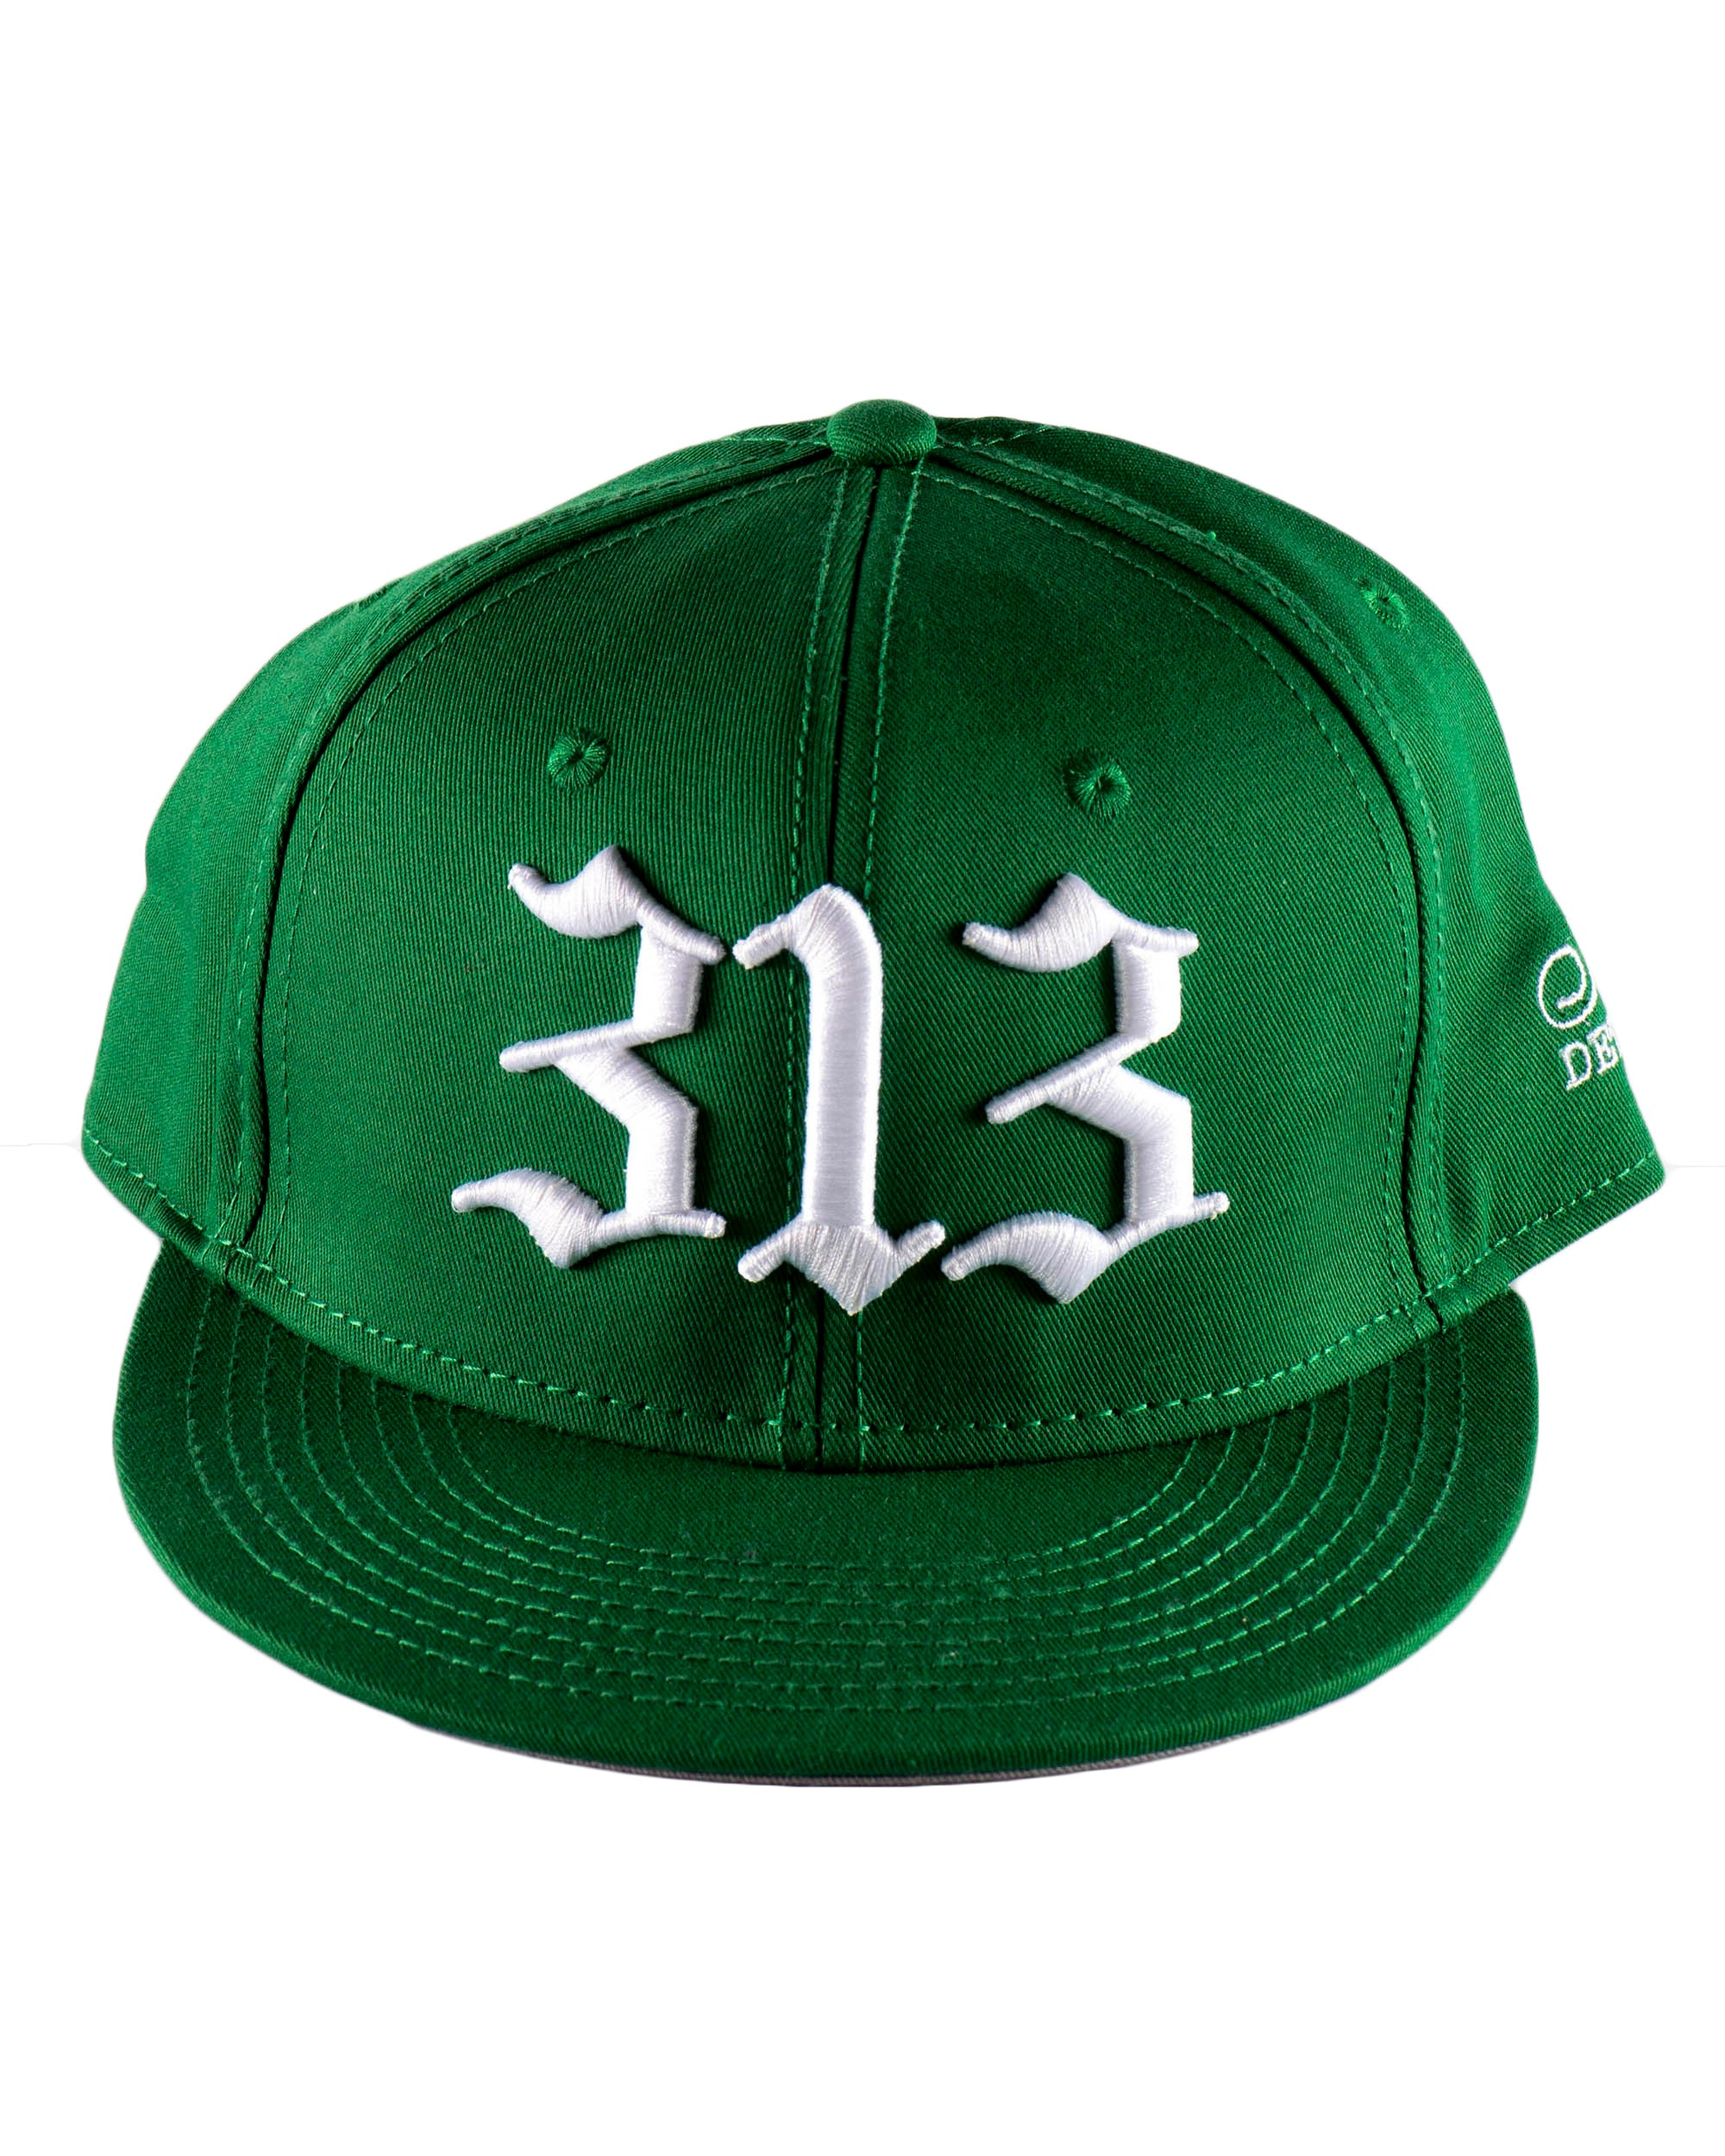 313 - Flat Bill Puff Print Snap Back Hat - Green - The Great Lakes State 9de181cef8d7